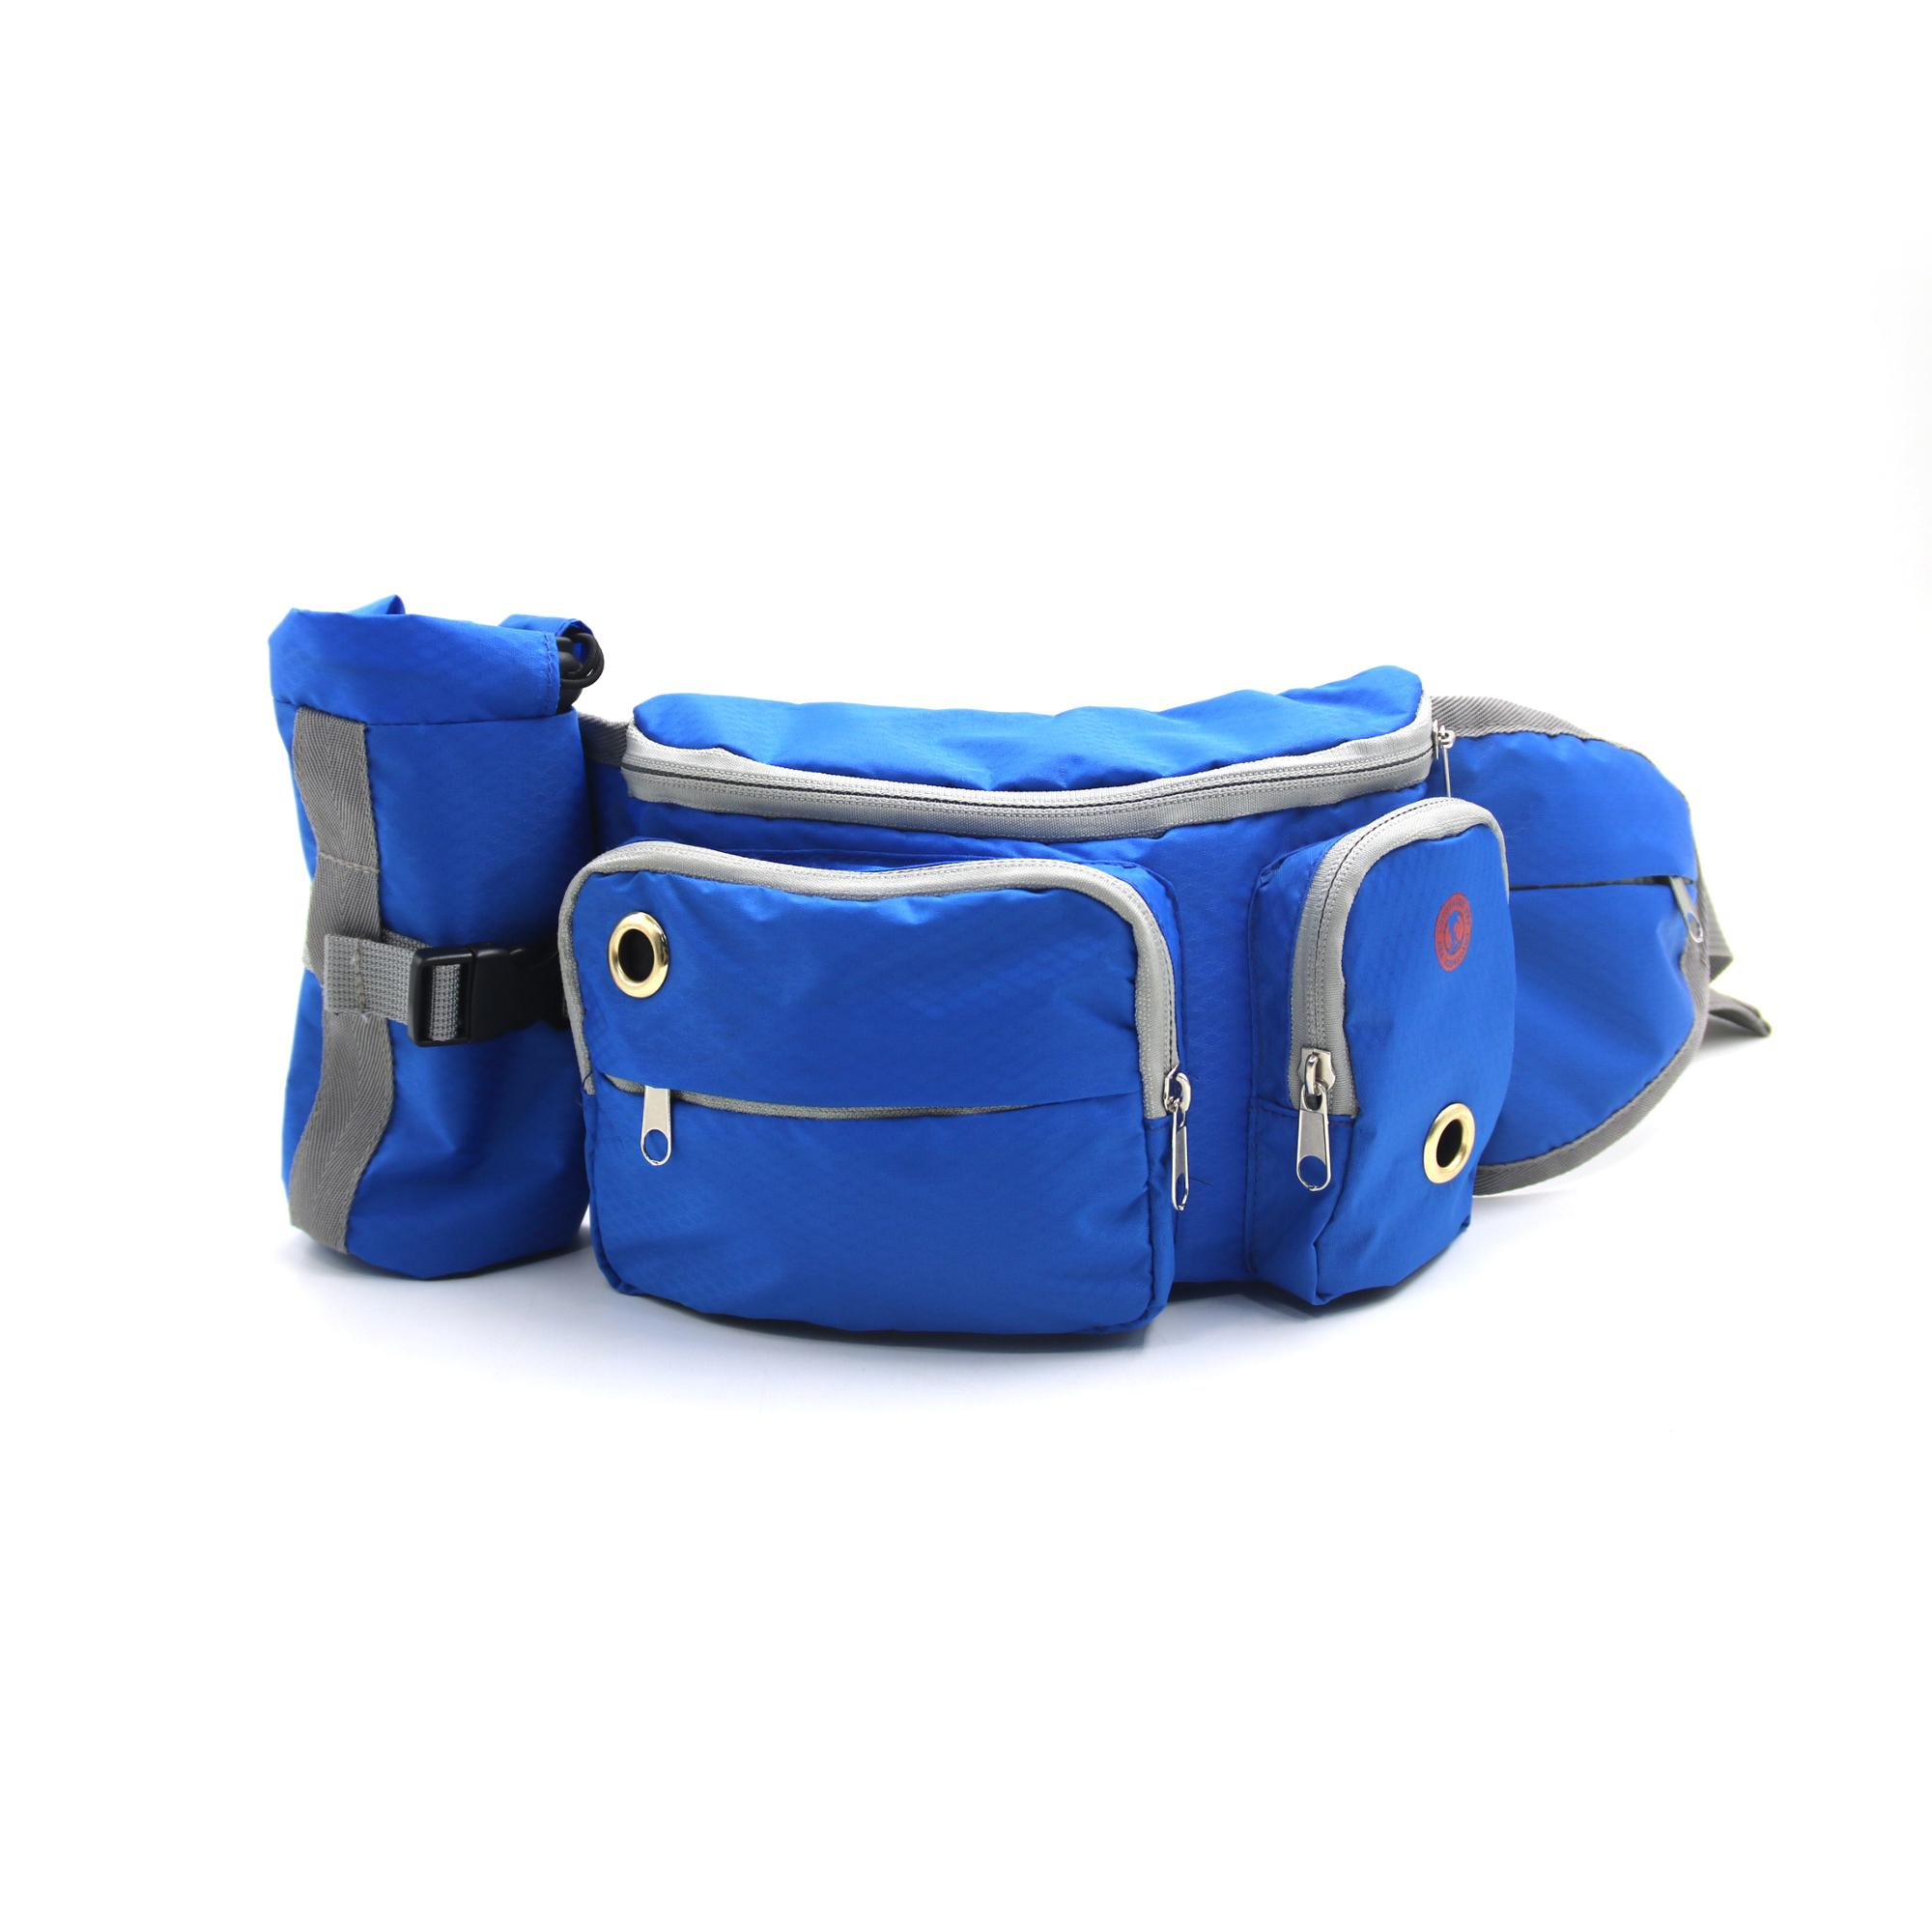 Lovoyager pet training pouch sports Multiple Pockets Dog Treat Training Utility Pouch